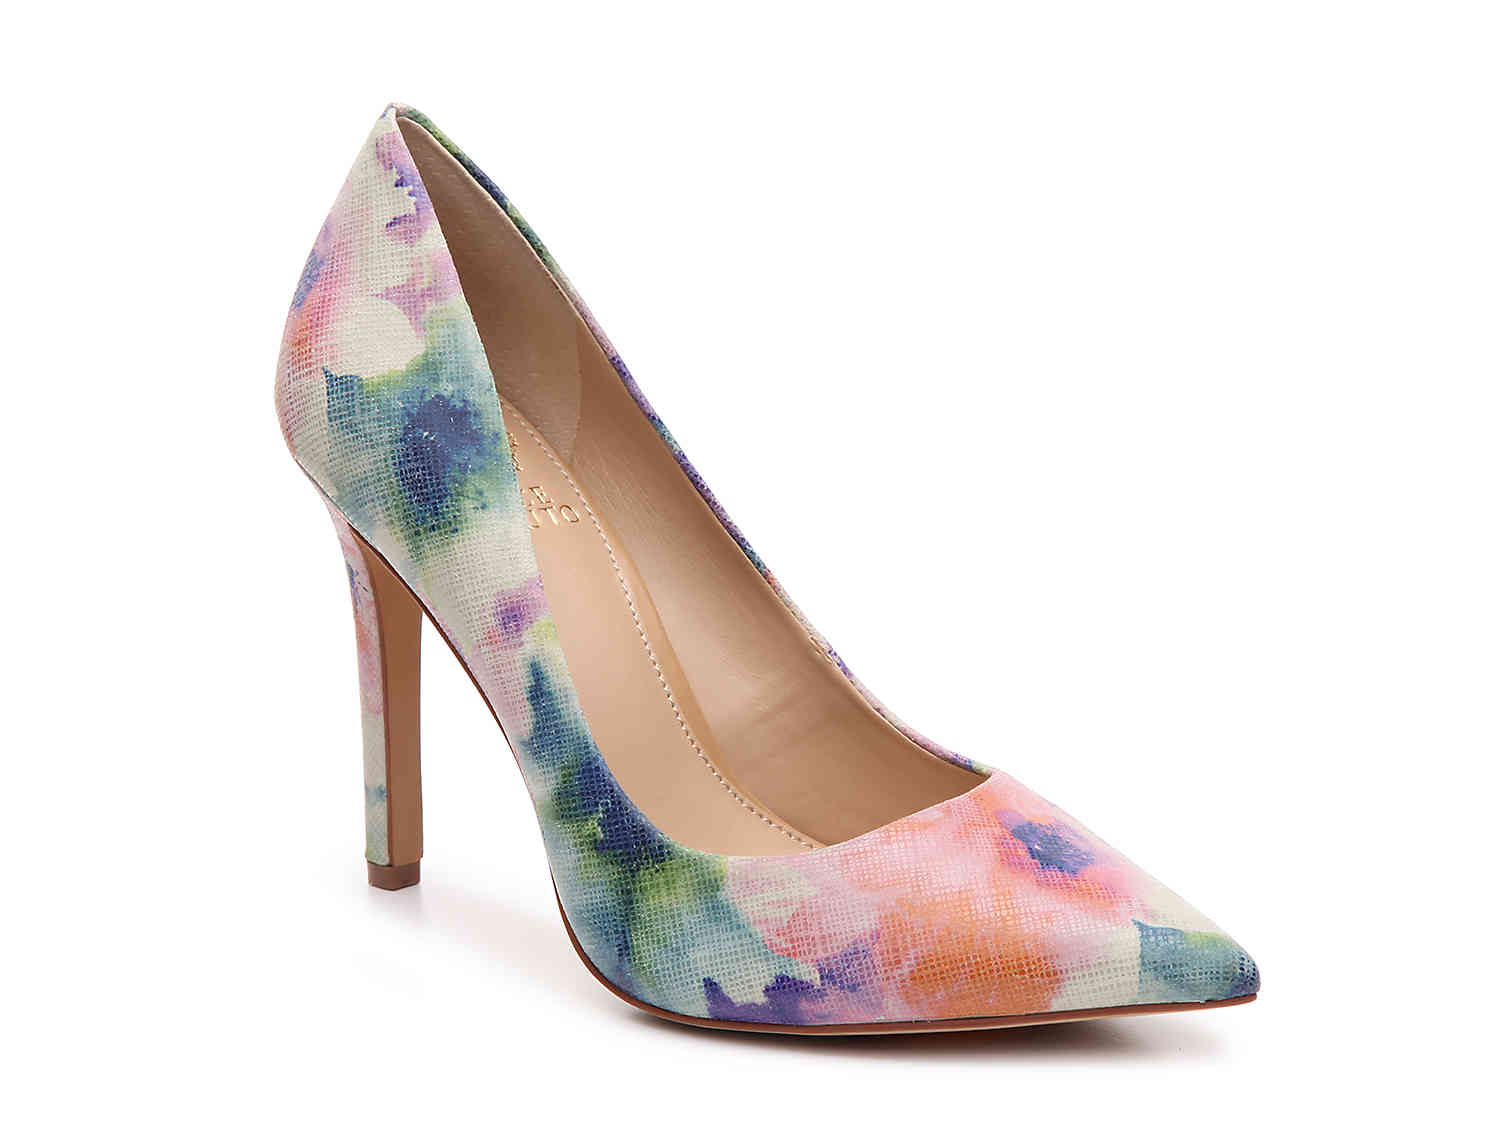 Vince Camuto Callista Geometric Pump. Courtesy of DSW.